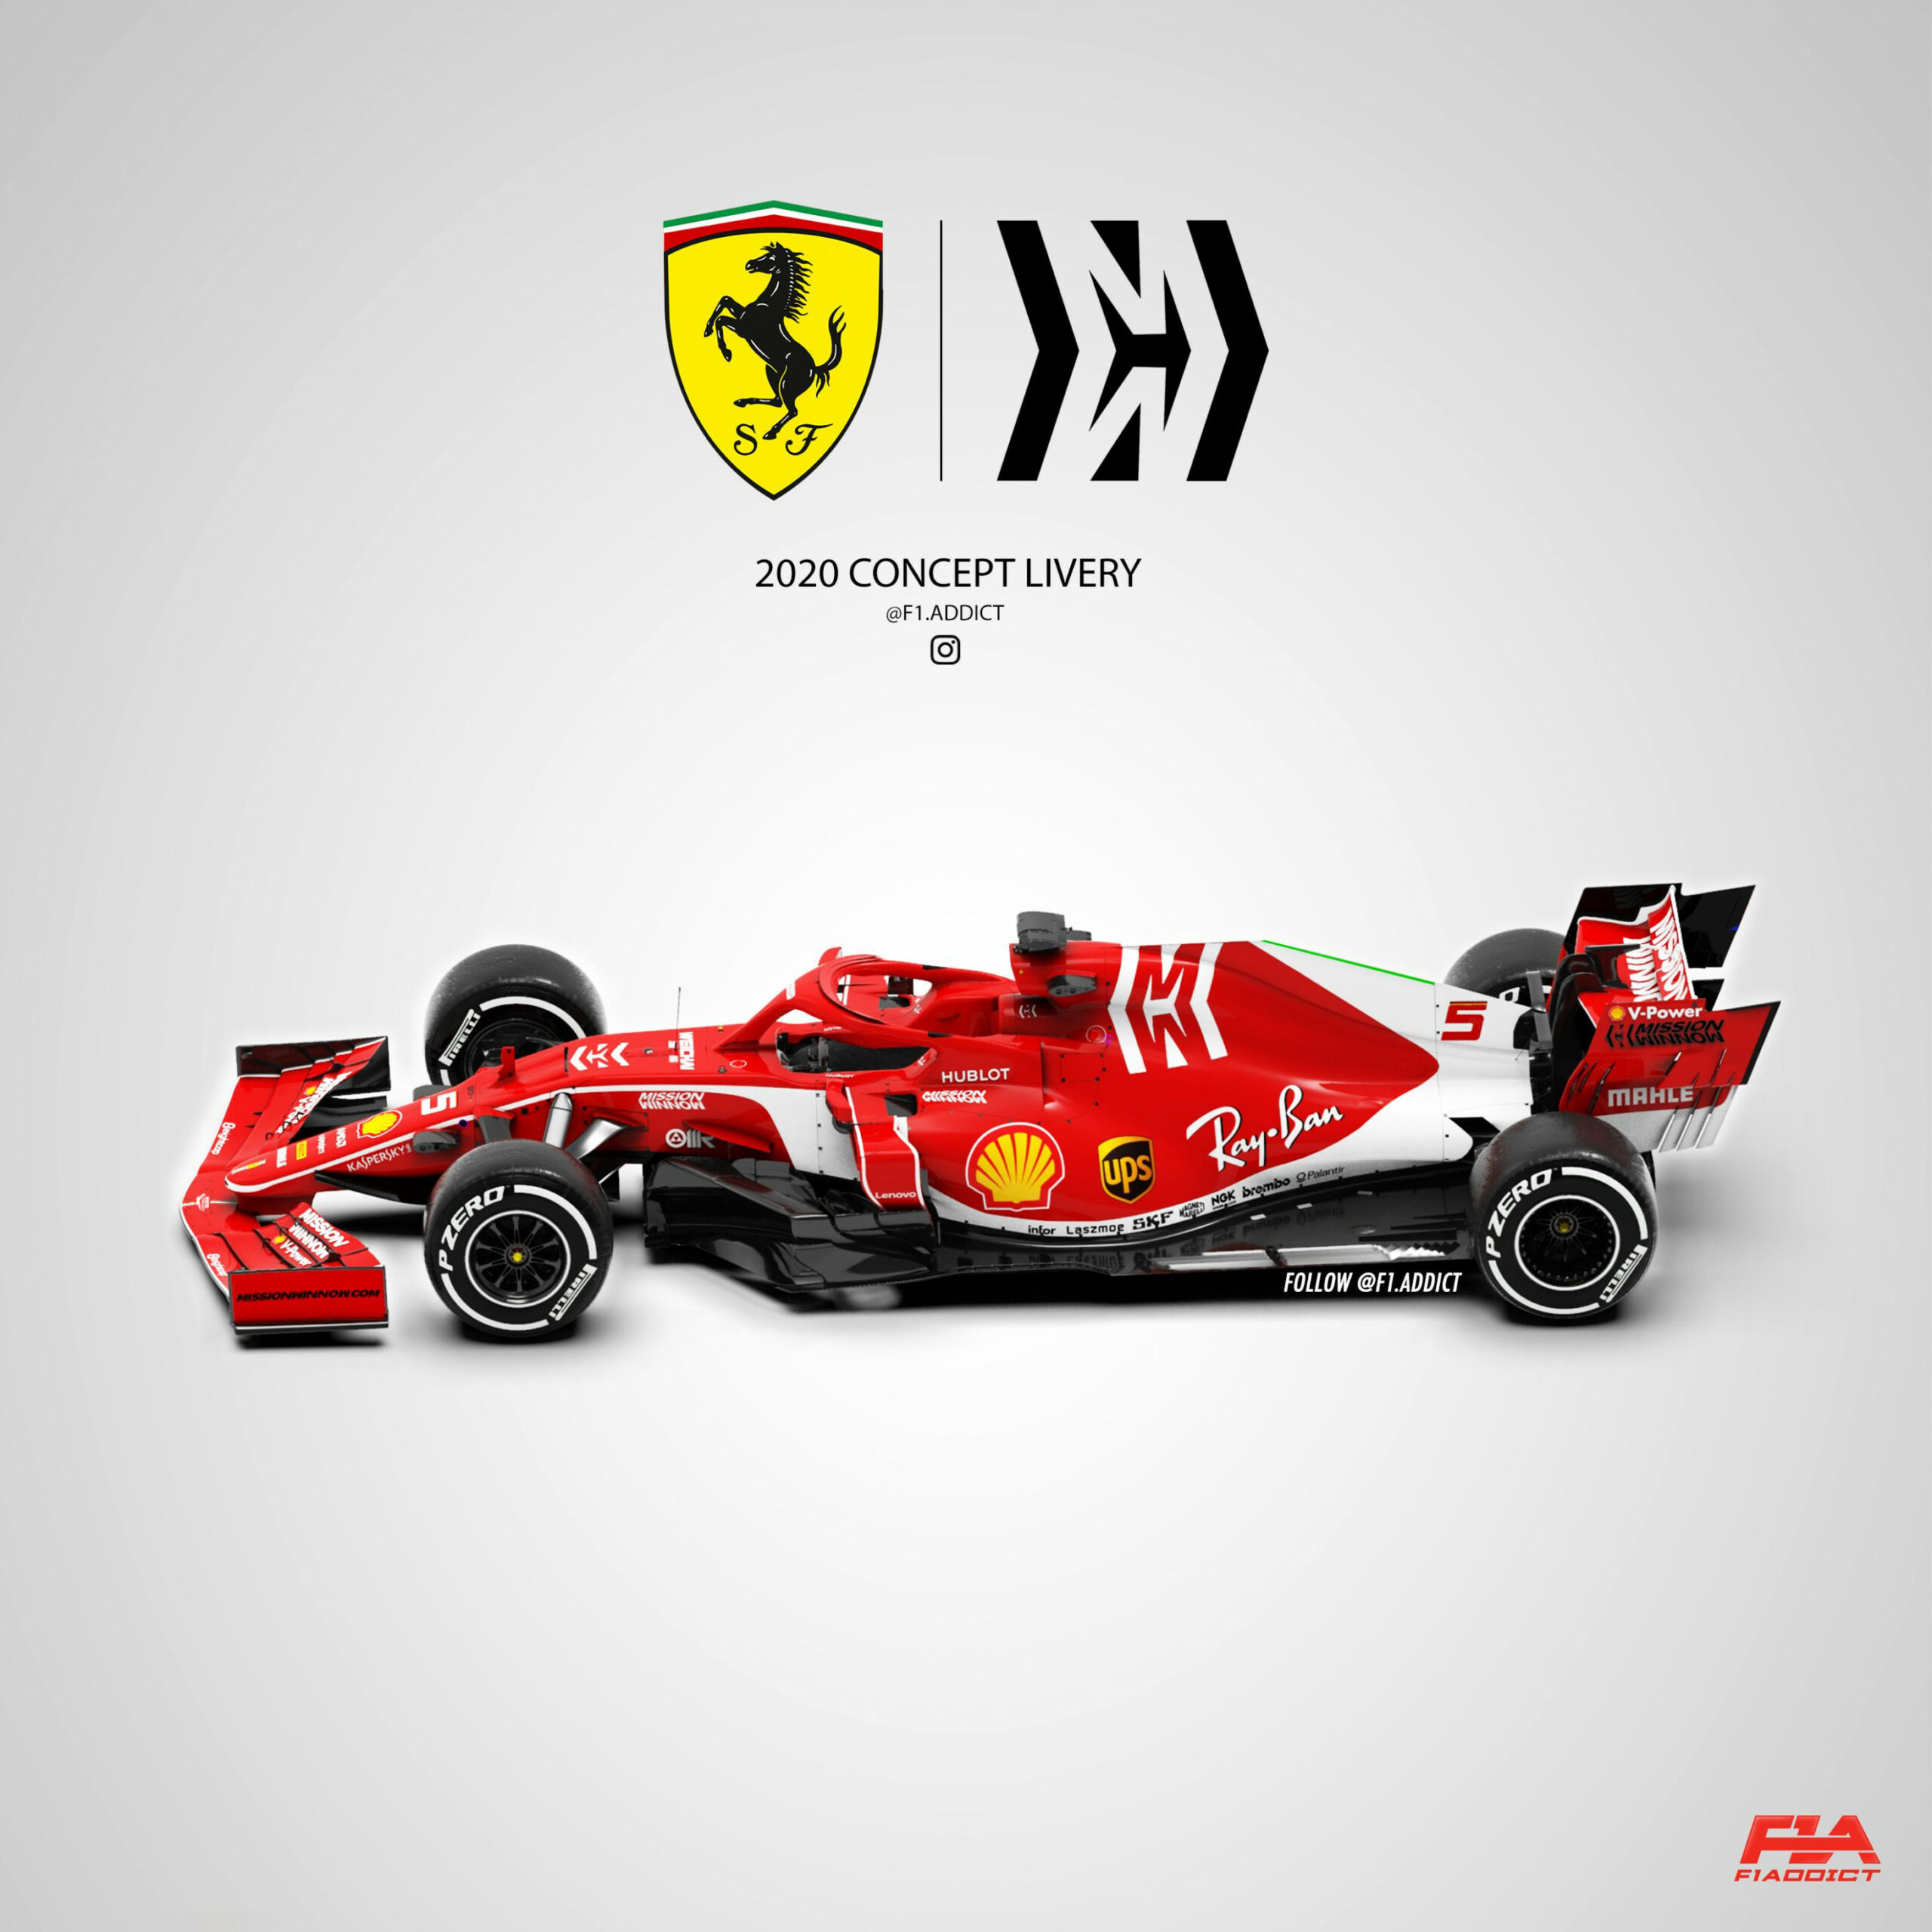 Ferrari 8 Concept Livery. Hope you like it! : formula8